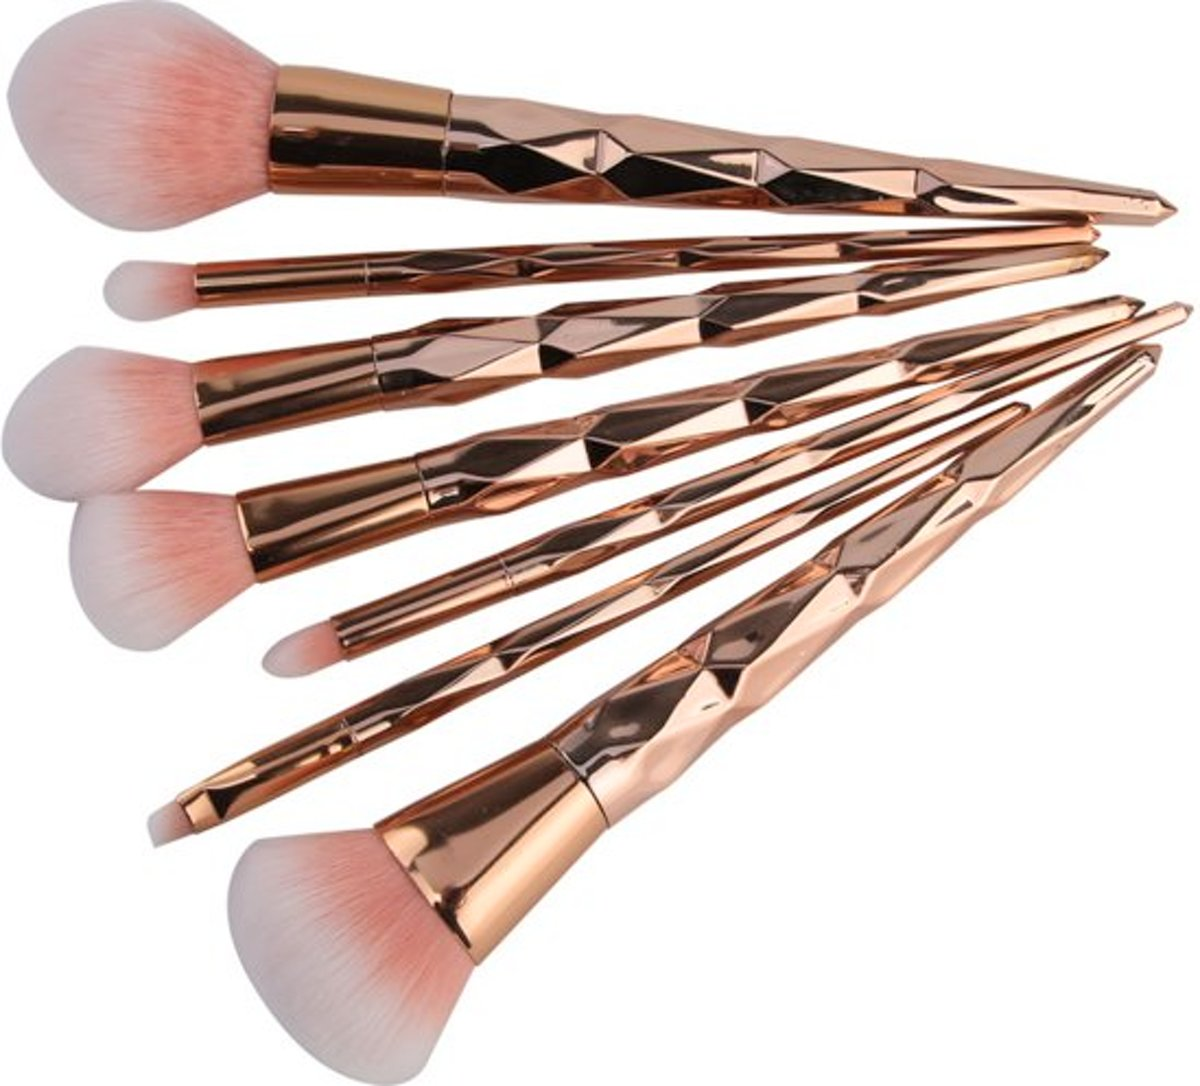 7-delige Make-up Kwasten/Brush Set | Shiny Rosegold | Fashion Favorite